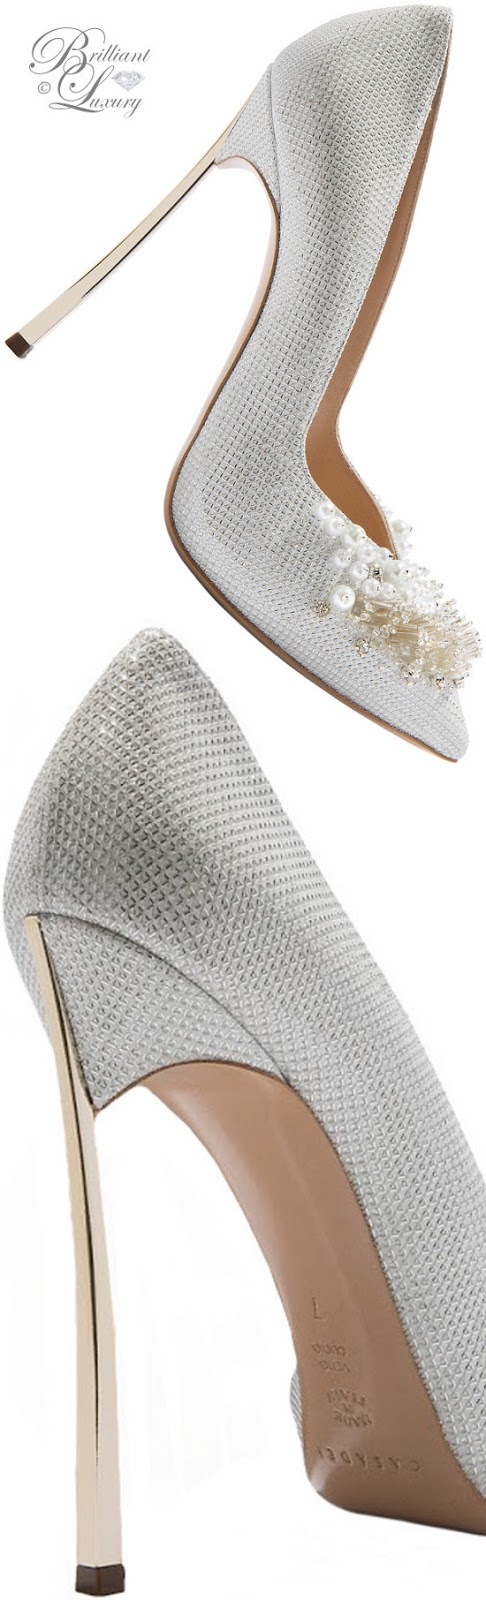 Brilliant Luxury ♦ Fall in ~ Casadei Blade high heels in white with strass ornament